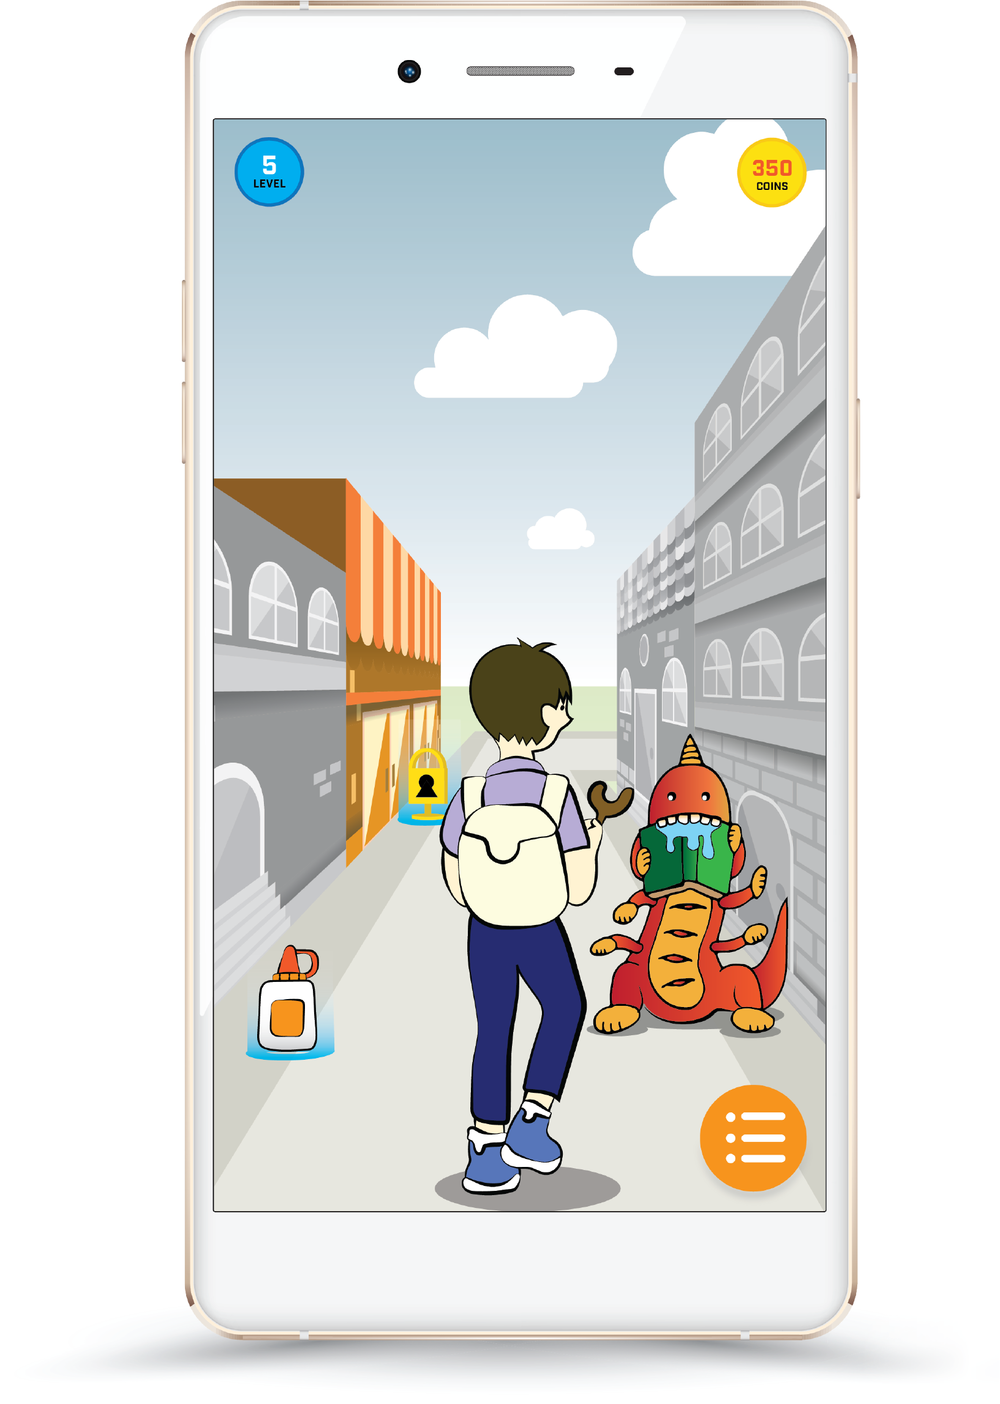 Good Aim allows teens to be heroes. - Players can find monsters in their neighborhoods and battle the creatures with a slingshot. Monsters represent local community problems related to education, healthcare, the environment, and more.Boss events let you team up with your neighbors to defeat larger community monsters together in real time.